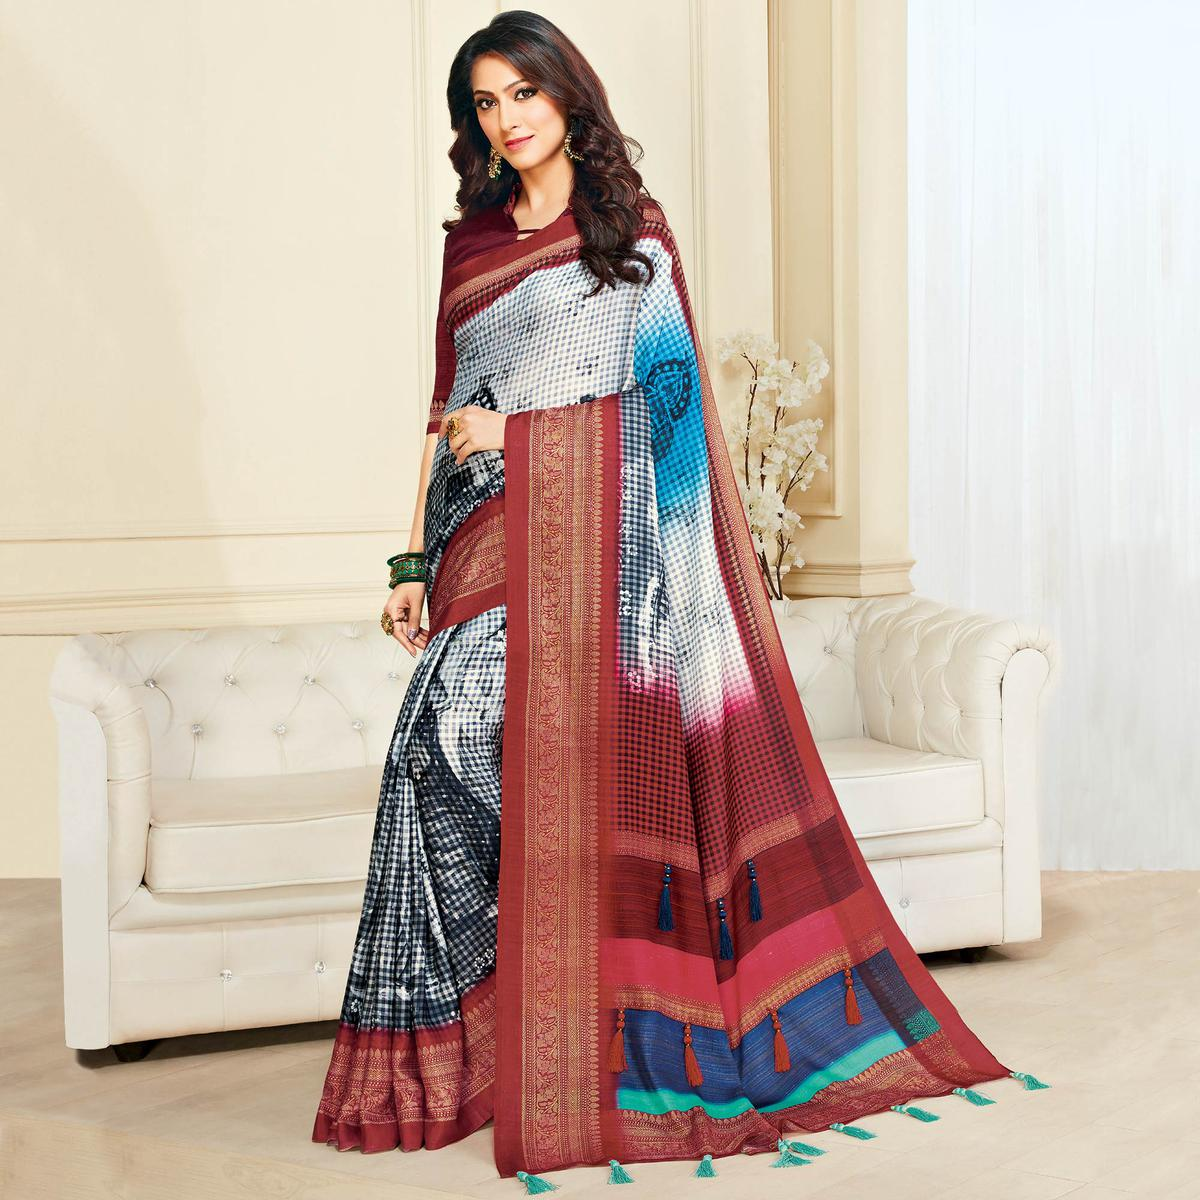 Staring White & Maroon Colored Casual Wear Printed Jute Silk Saree